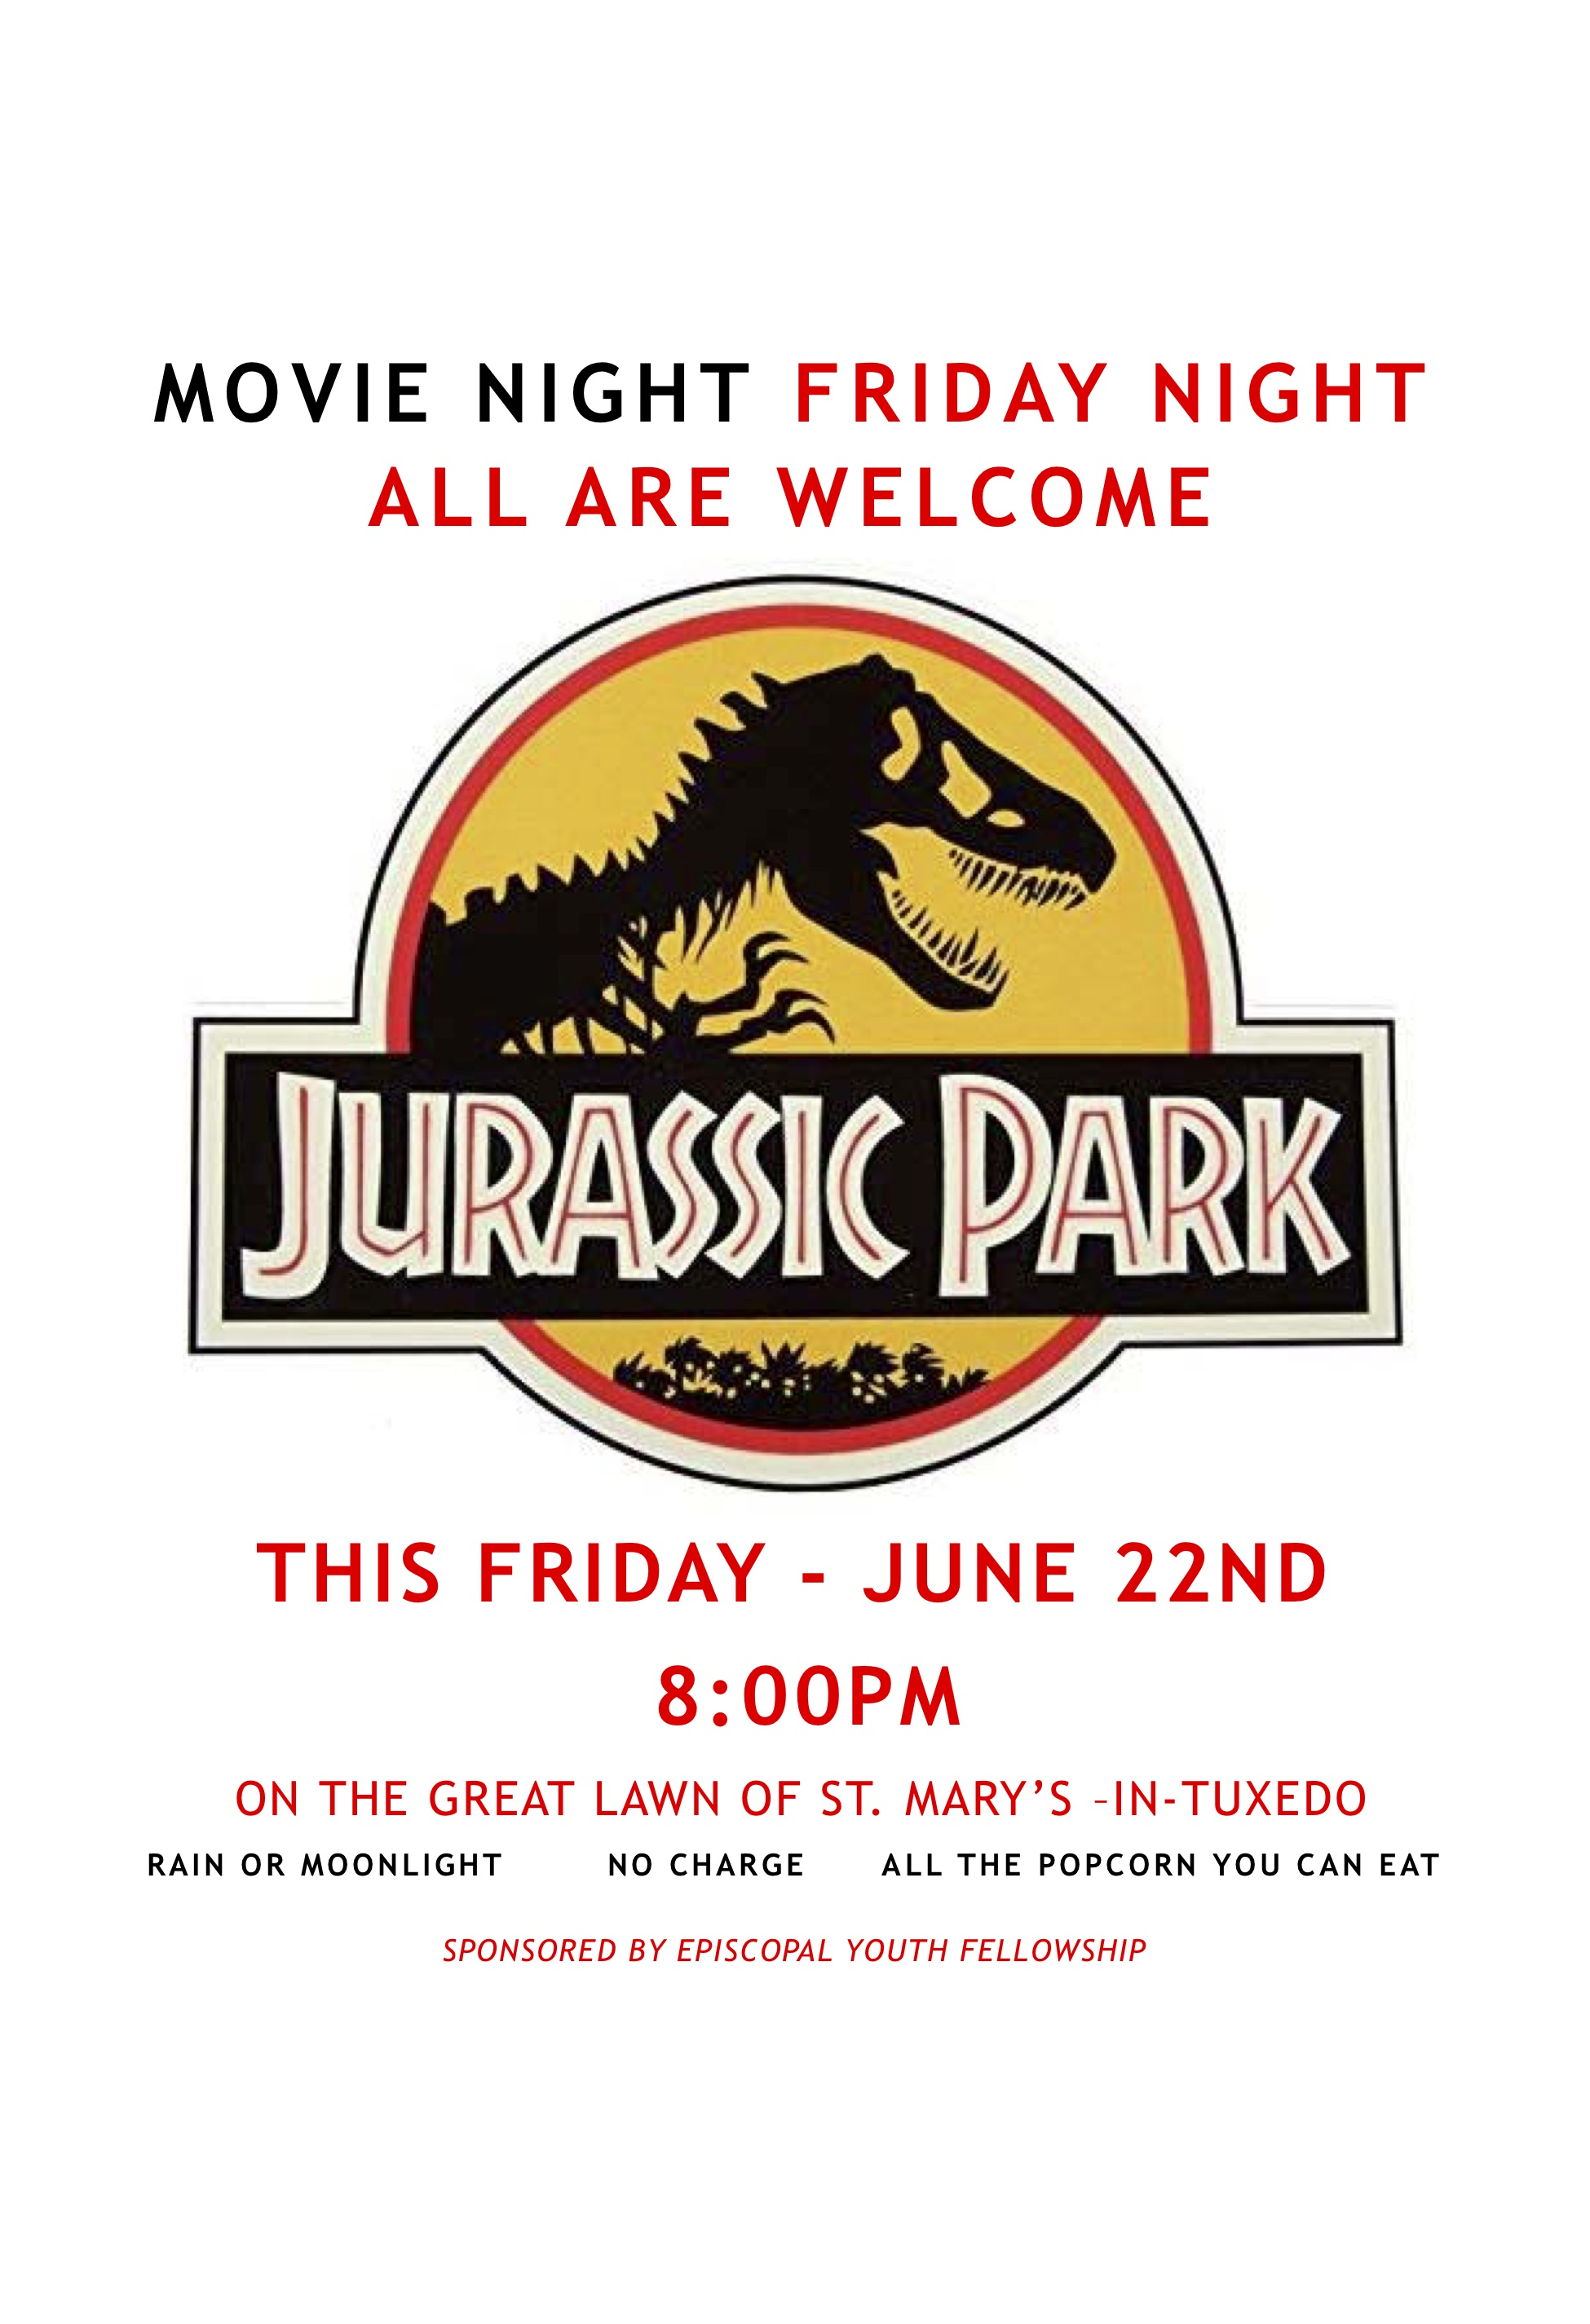 JURRASIC PARK Digital Poster 13 x 19.jpg